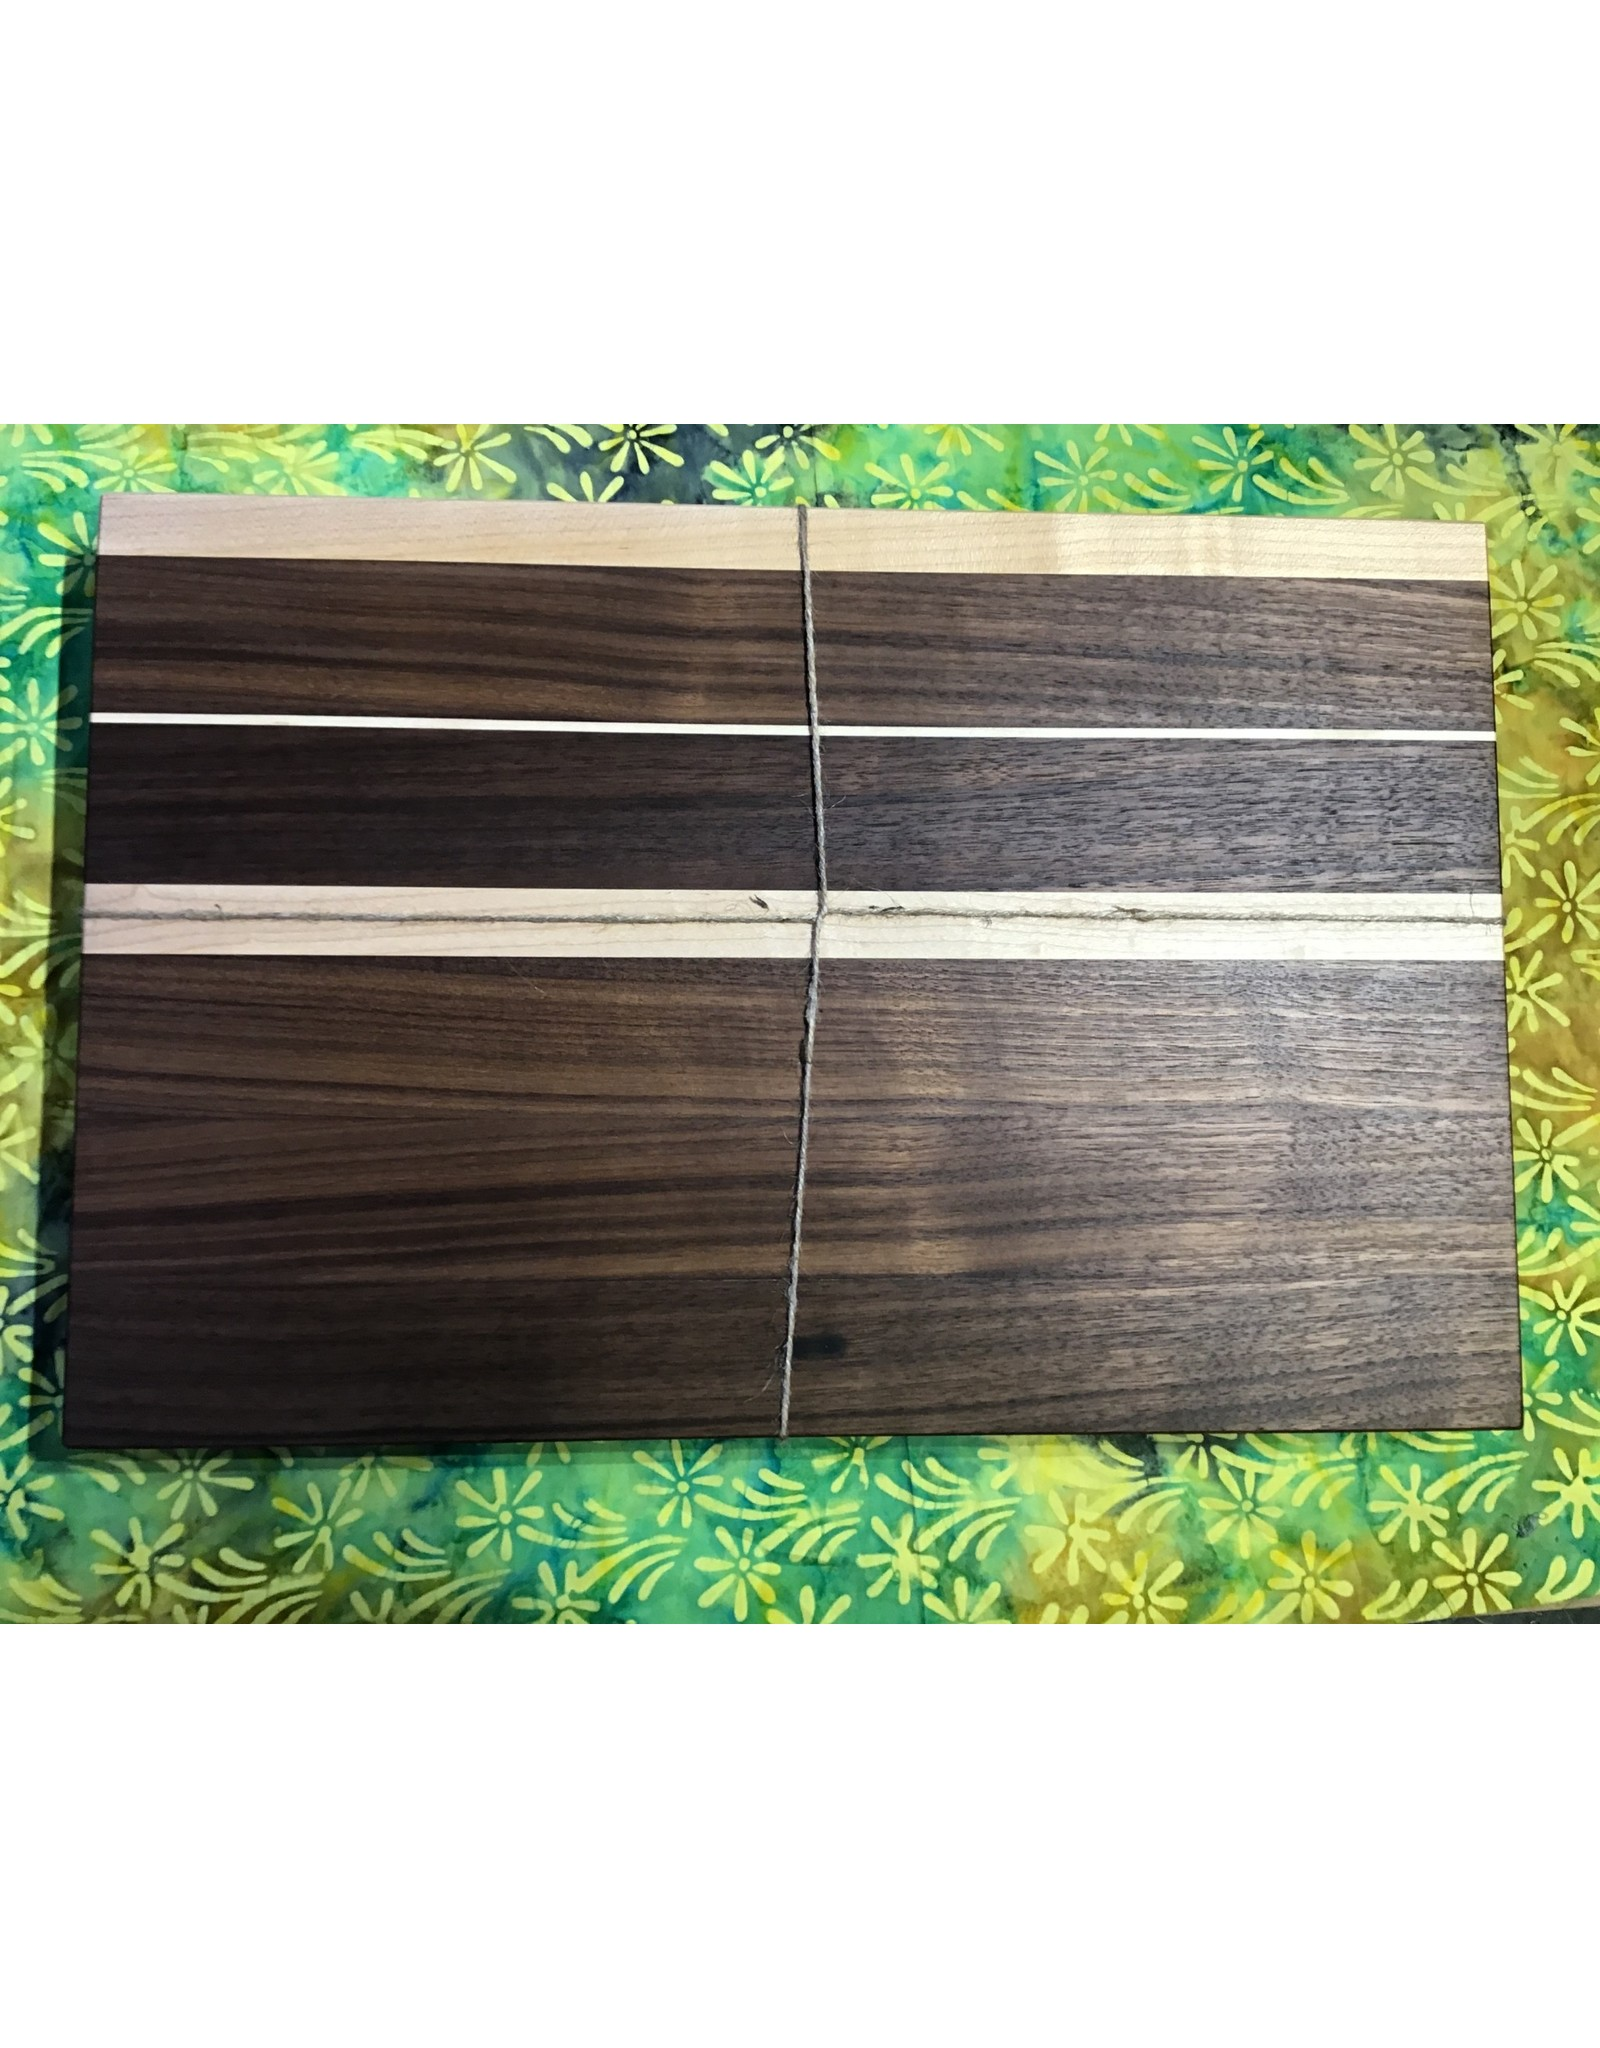 Trinity Craftsman Large Cutting Board Walnut with Groove and Maple Stripes and Texas